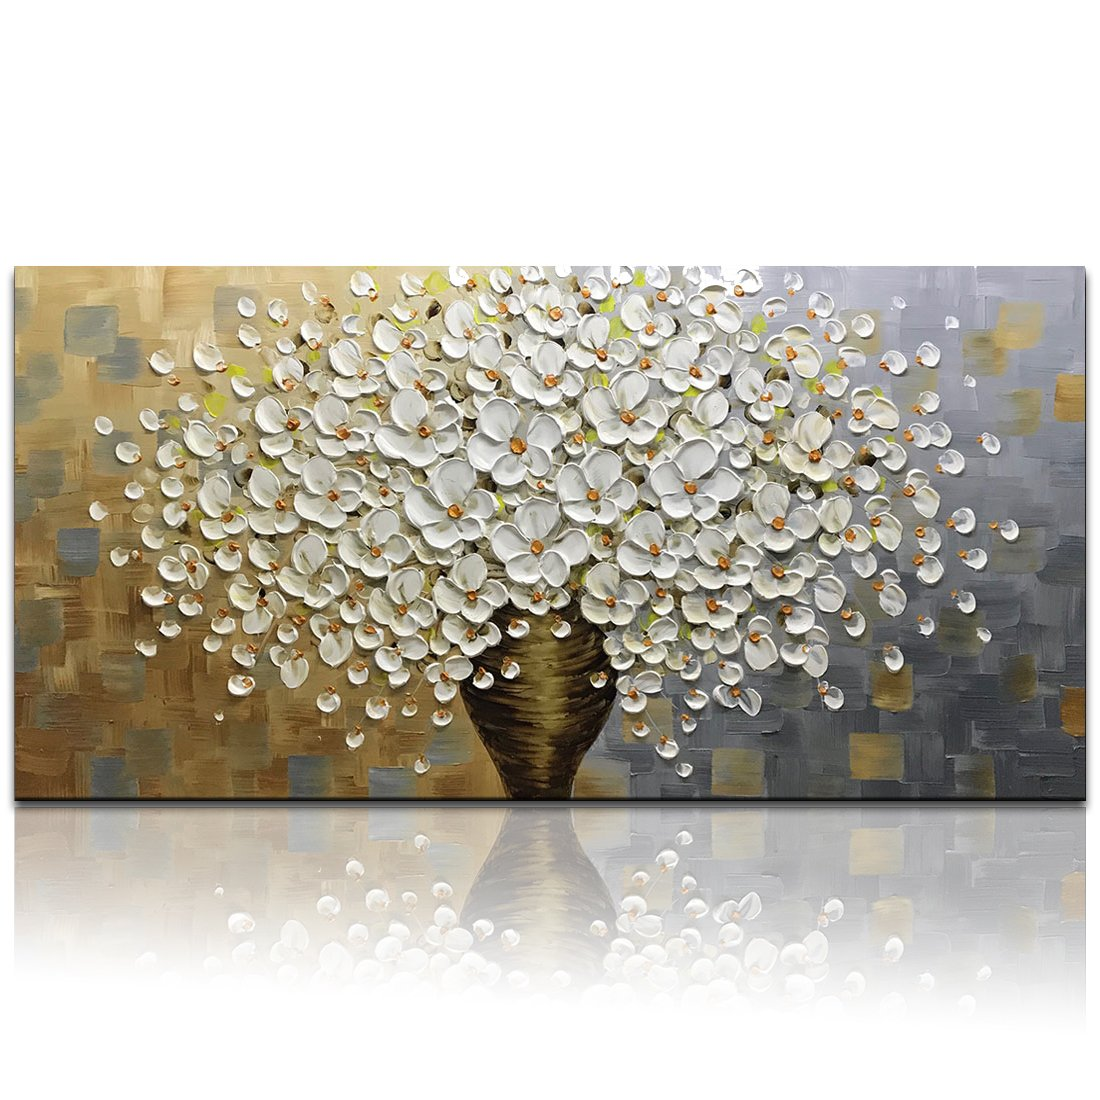 Desihum - Hand Painted Oil Painting On Canvas Texture Palette Knife White Flowers Picture Modern Home Decor Wall Art Large Suqare 3D Flowers Artwork(24x48inch)